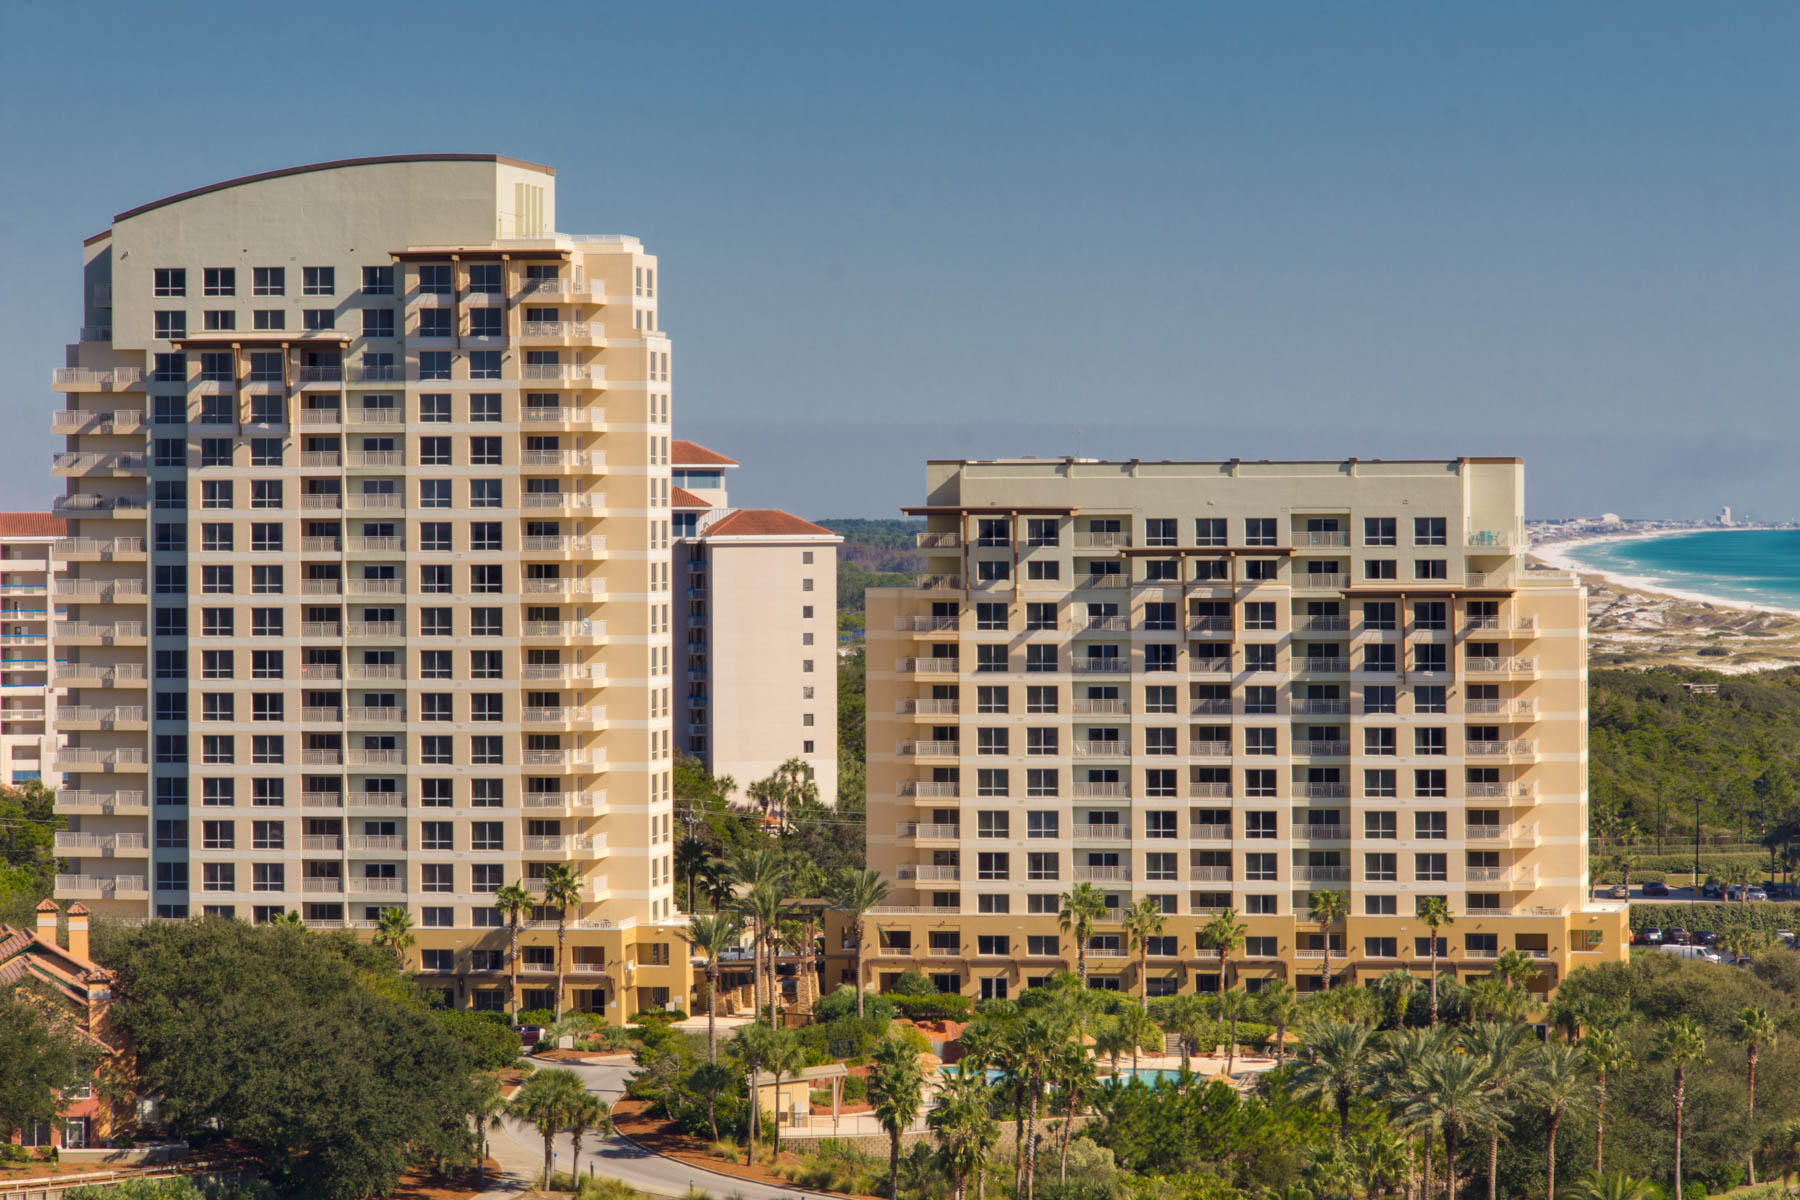 Miramar Beach Condominium